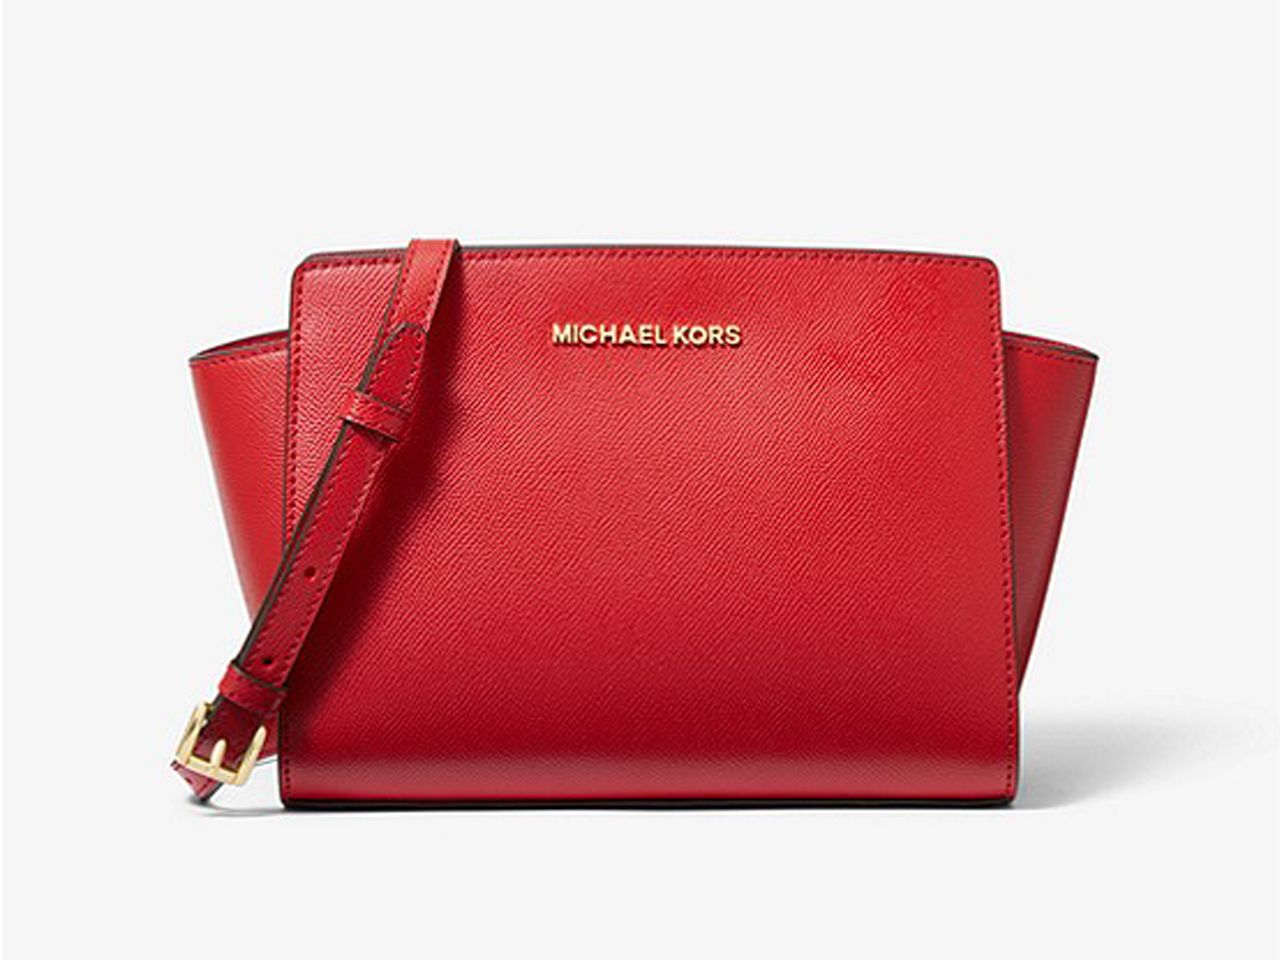 6763badd9ca16d 5 Great Steals From The Michael Kors Sale - Chatelaine